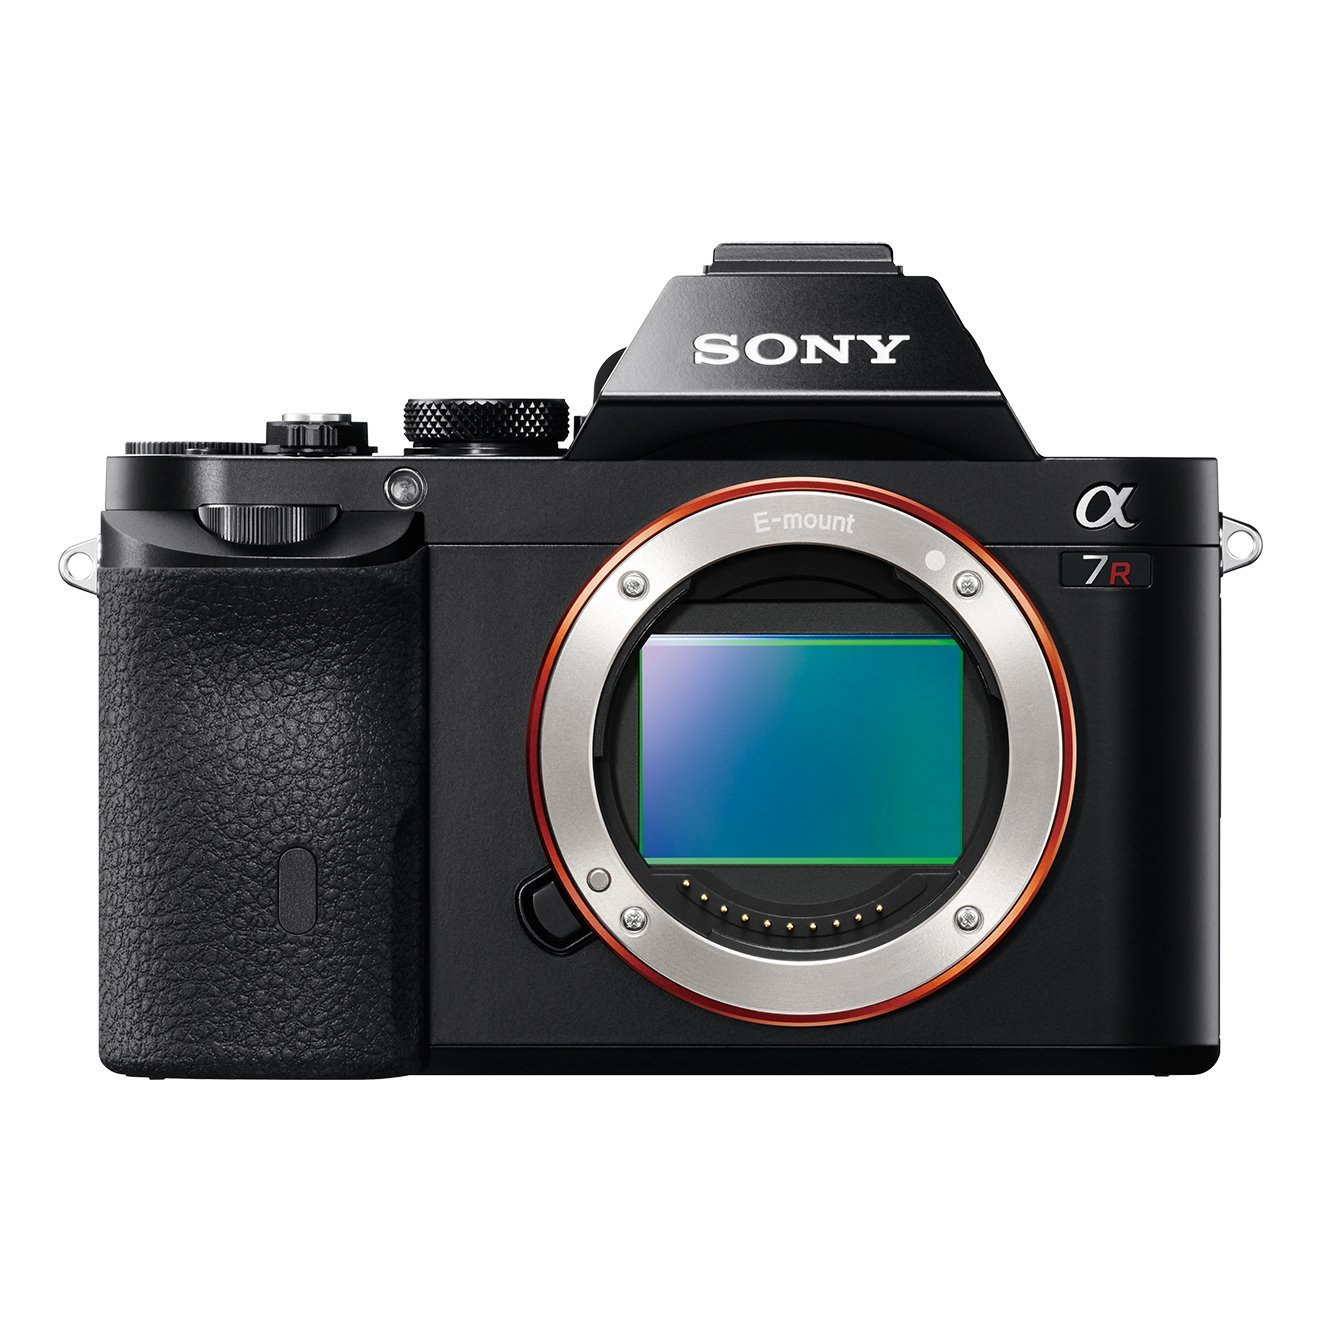 TALLA 36.8 Mp. Sony Ilce 7R - Cámara compacta de 36 MP (1080p Full HD) Negro